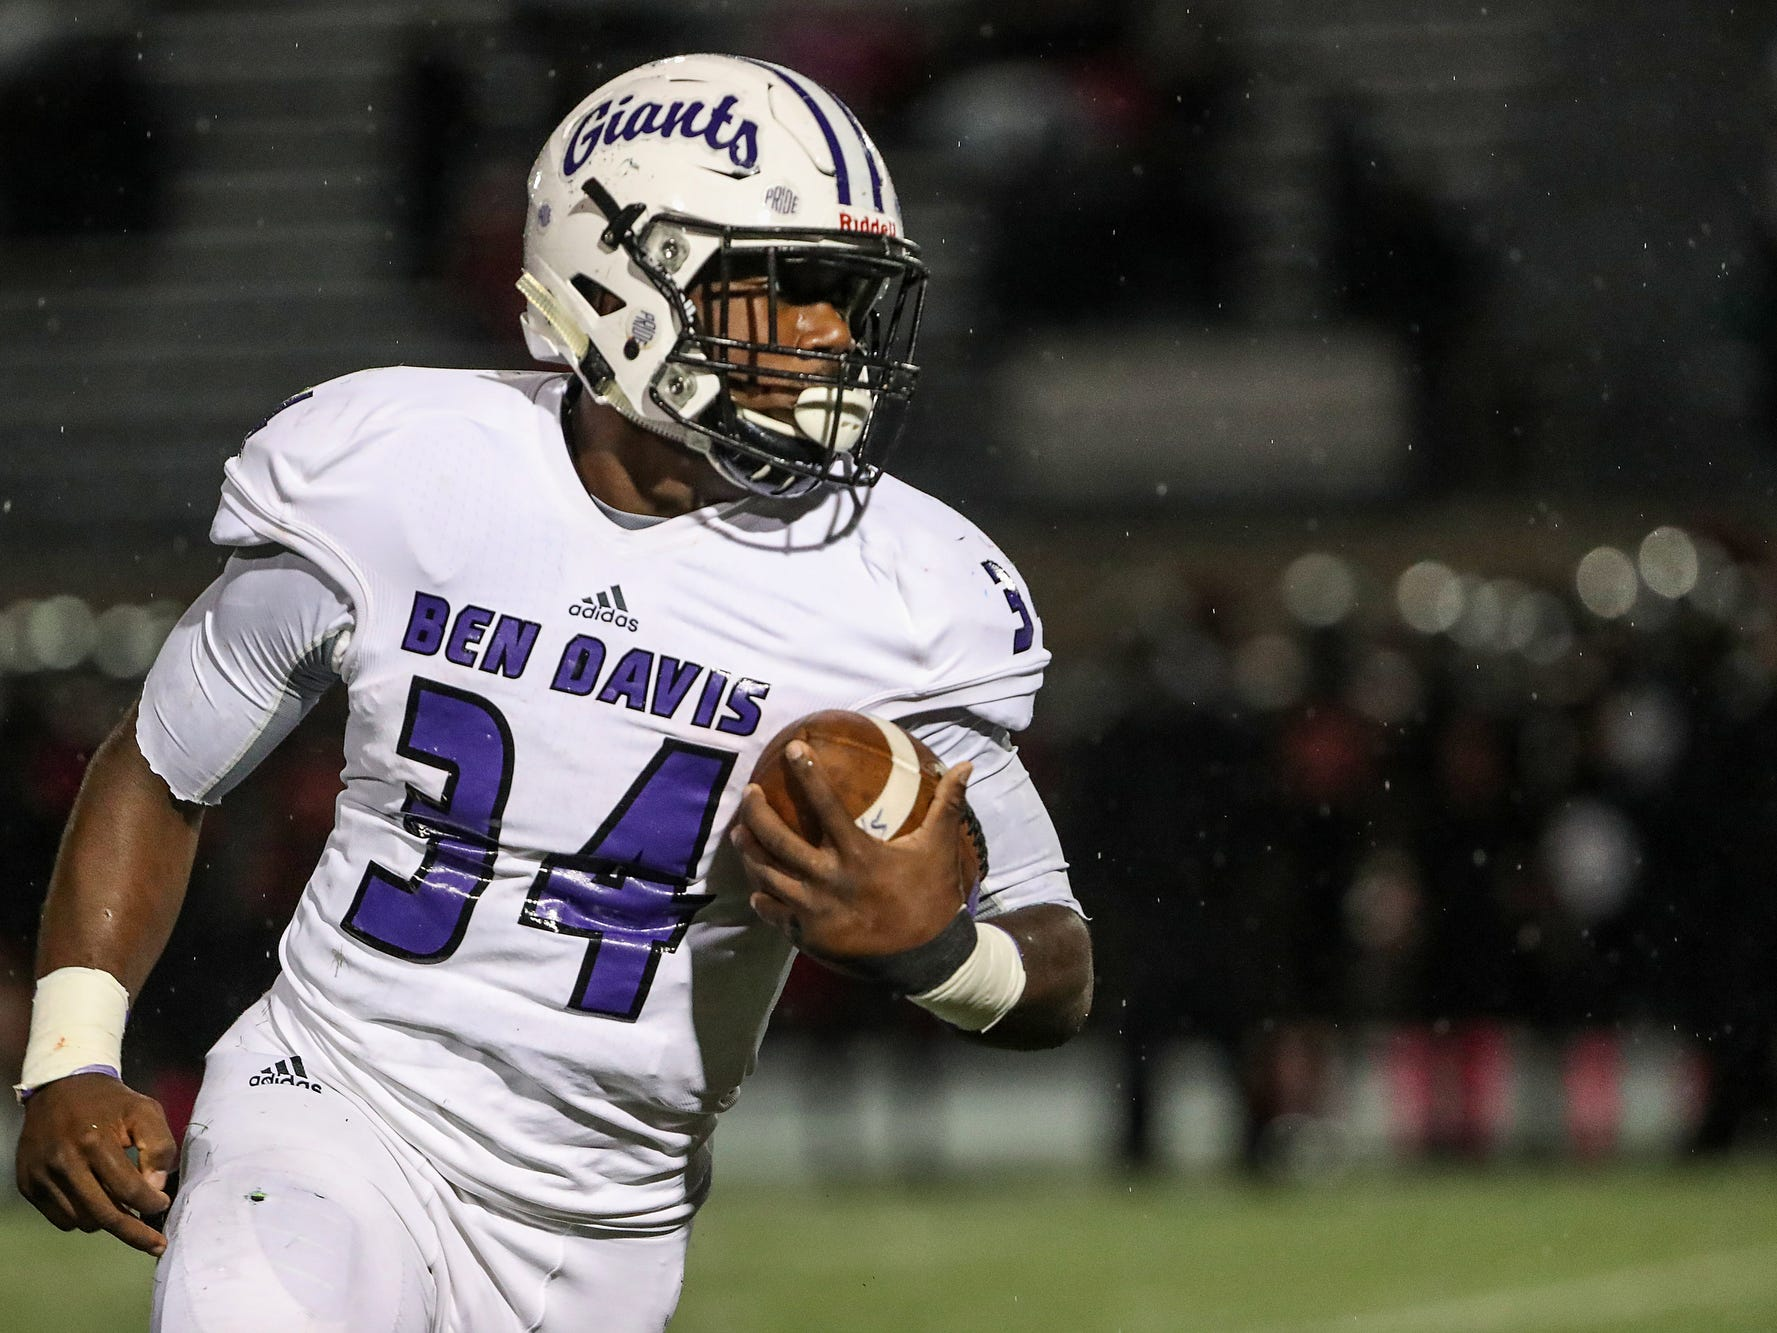 Ben Davis Giants running back Delbert Mimms (34) carries the ball in the first half of the game at North Central High School in Indianapolis, Oct. 12, 2018.